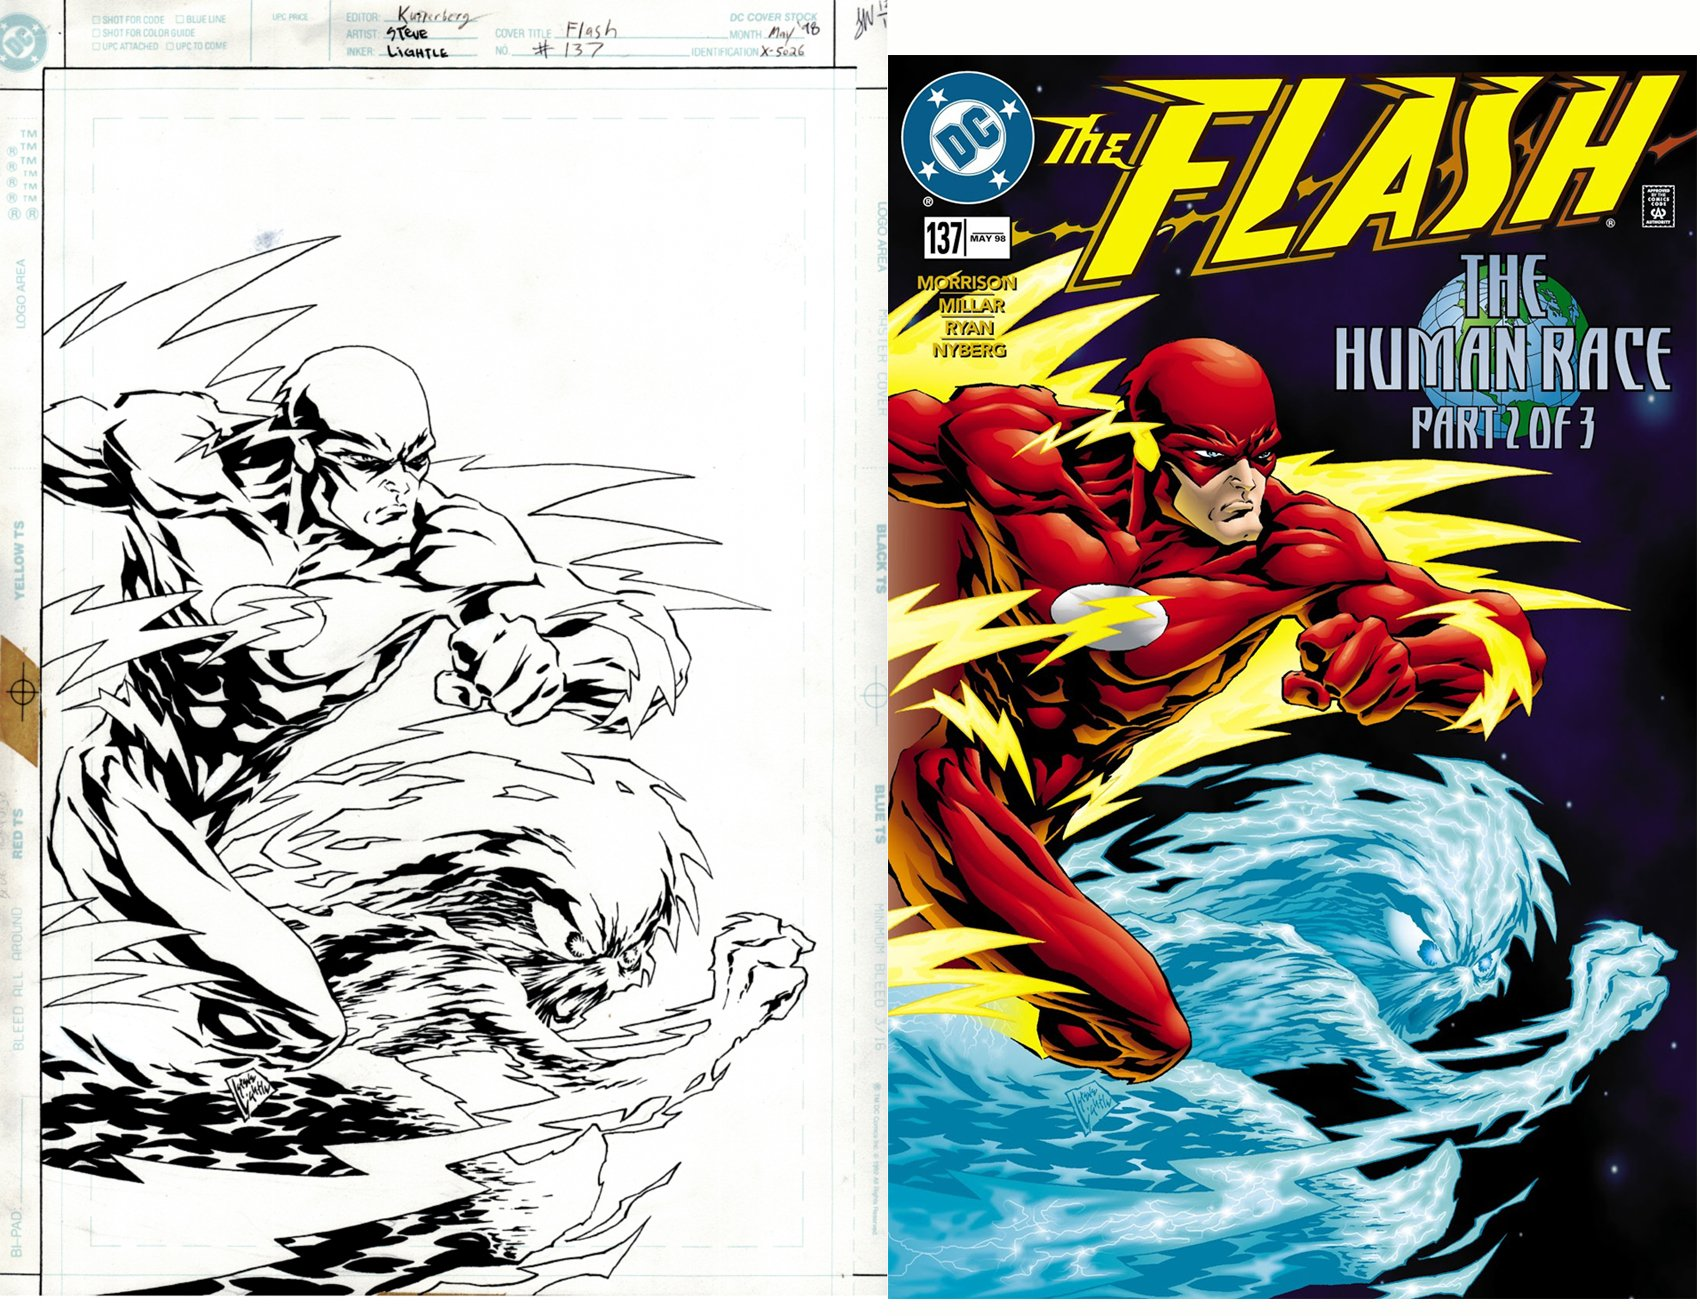 The Flash #137 Cover (SOLD LIVE ON 'DUELING DEALERS OF COMIC ART' EPISODE #30 PODCAST ON 8-9-2021 (RE-WATCH THIS FUNNY ART SELLING SHOW HERE)